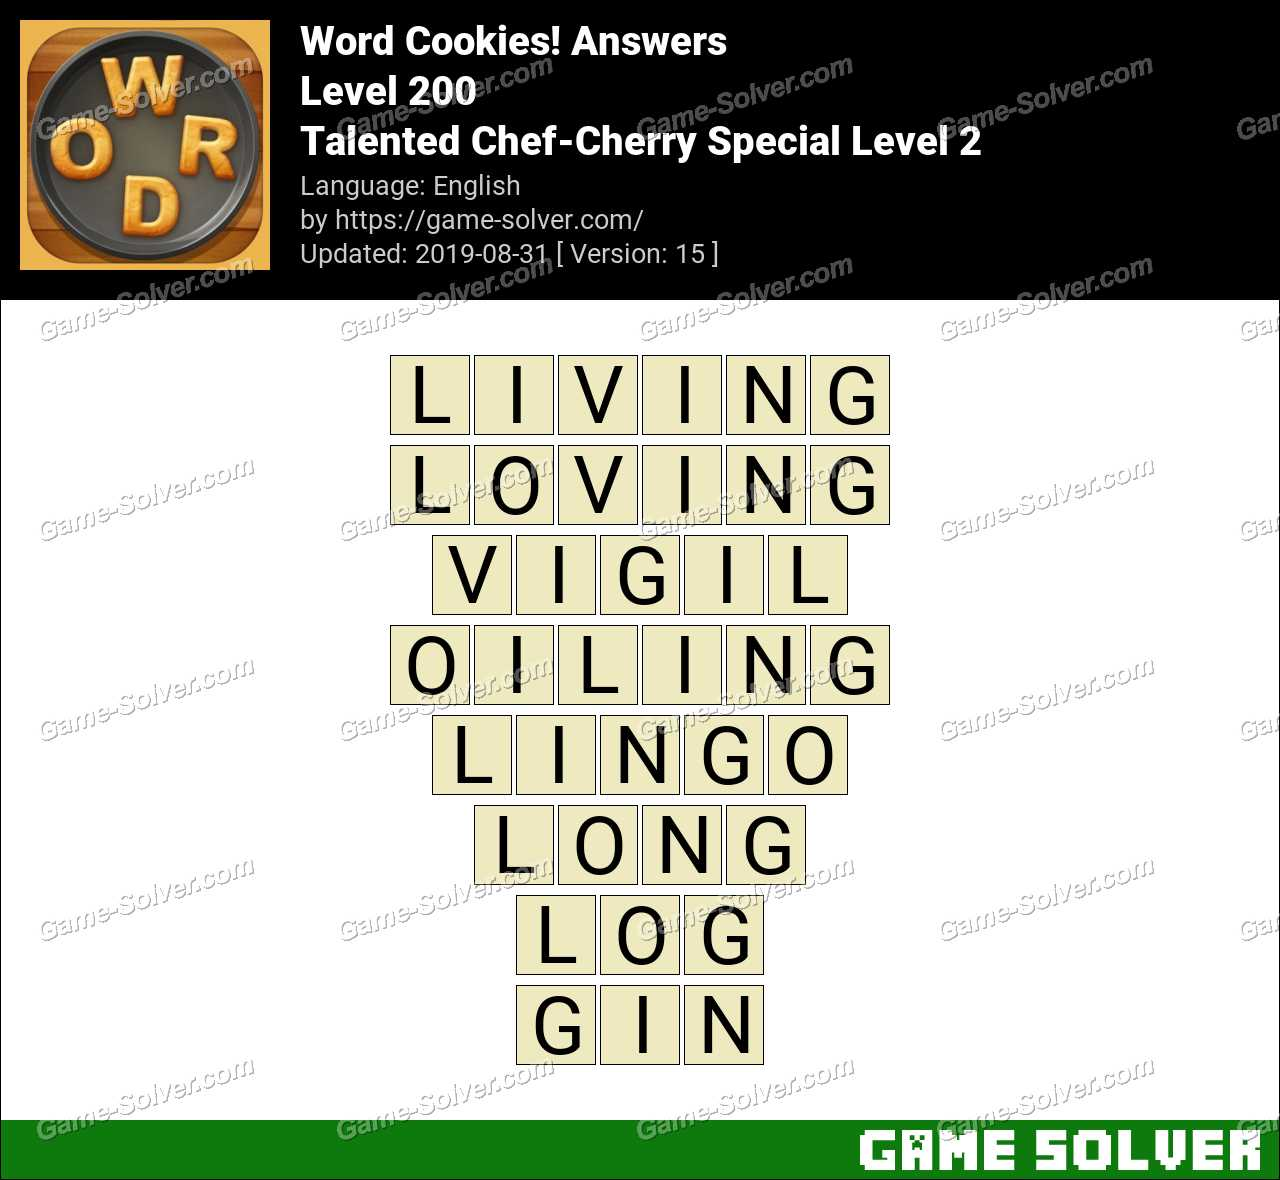 Word Cookies Talented Chef-Cherry Special Level 2 Answers